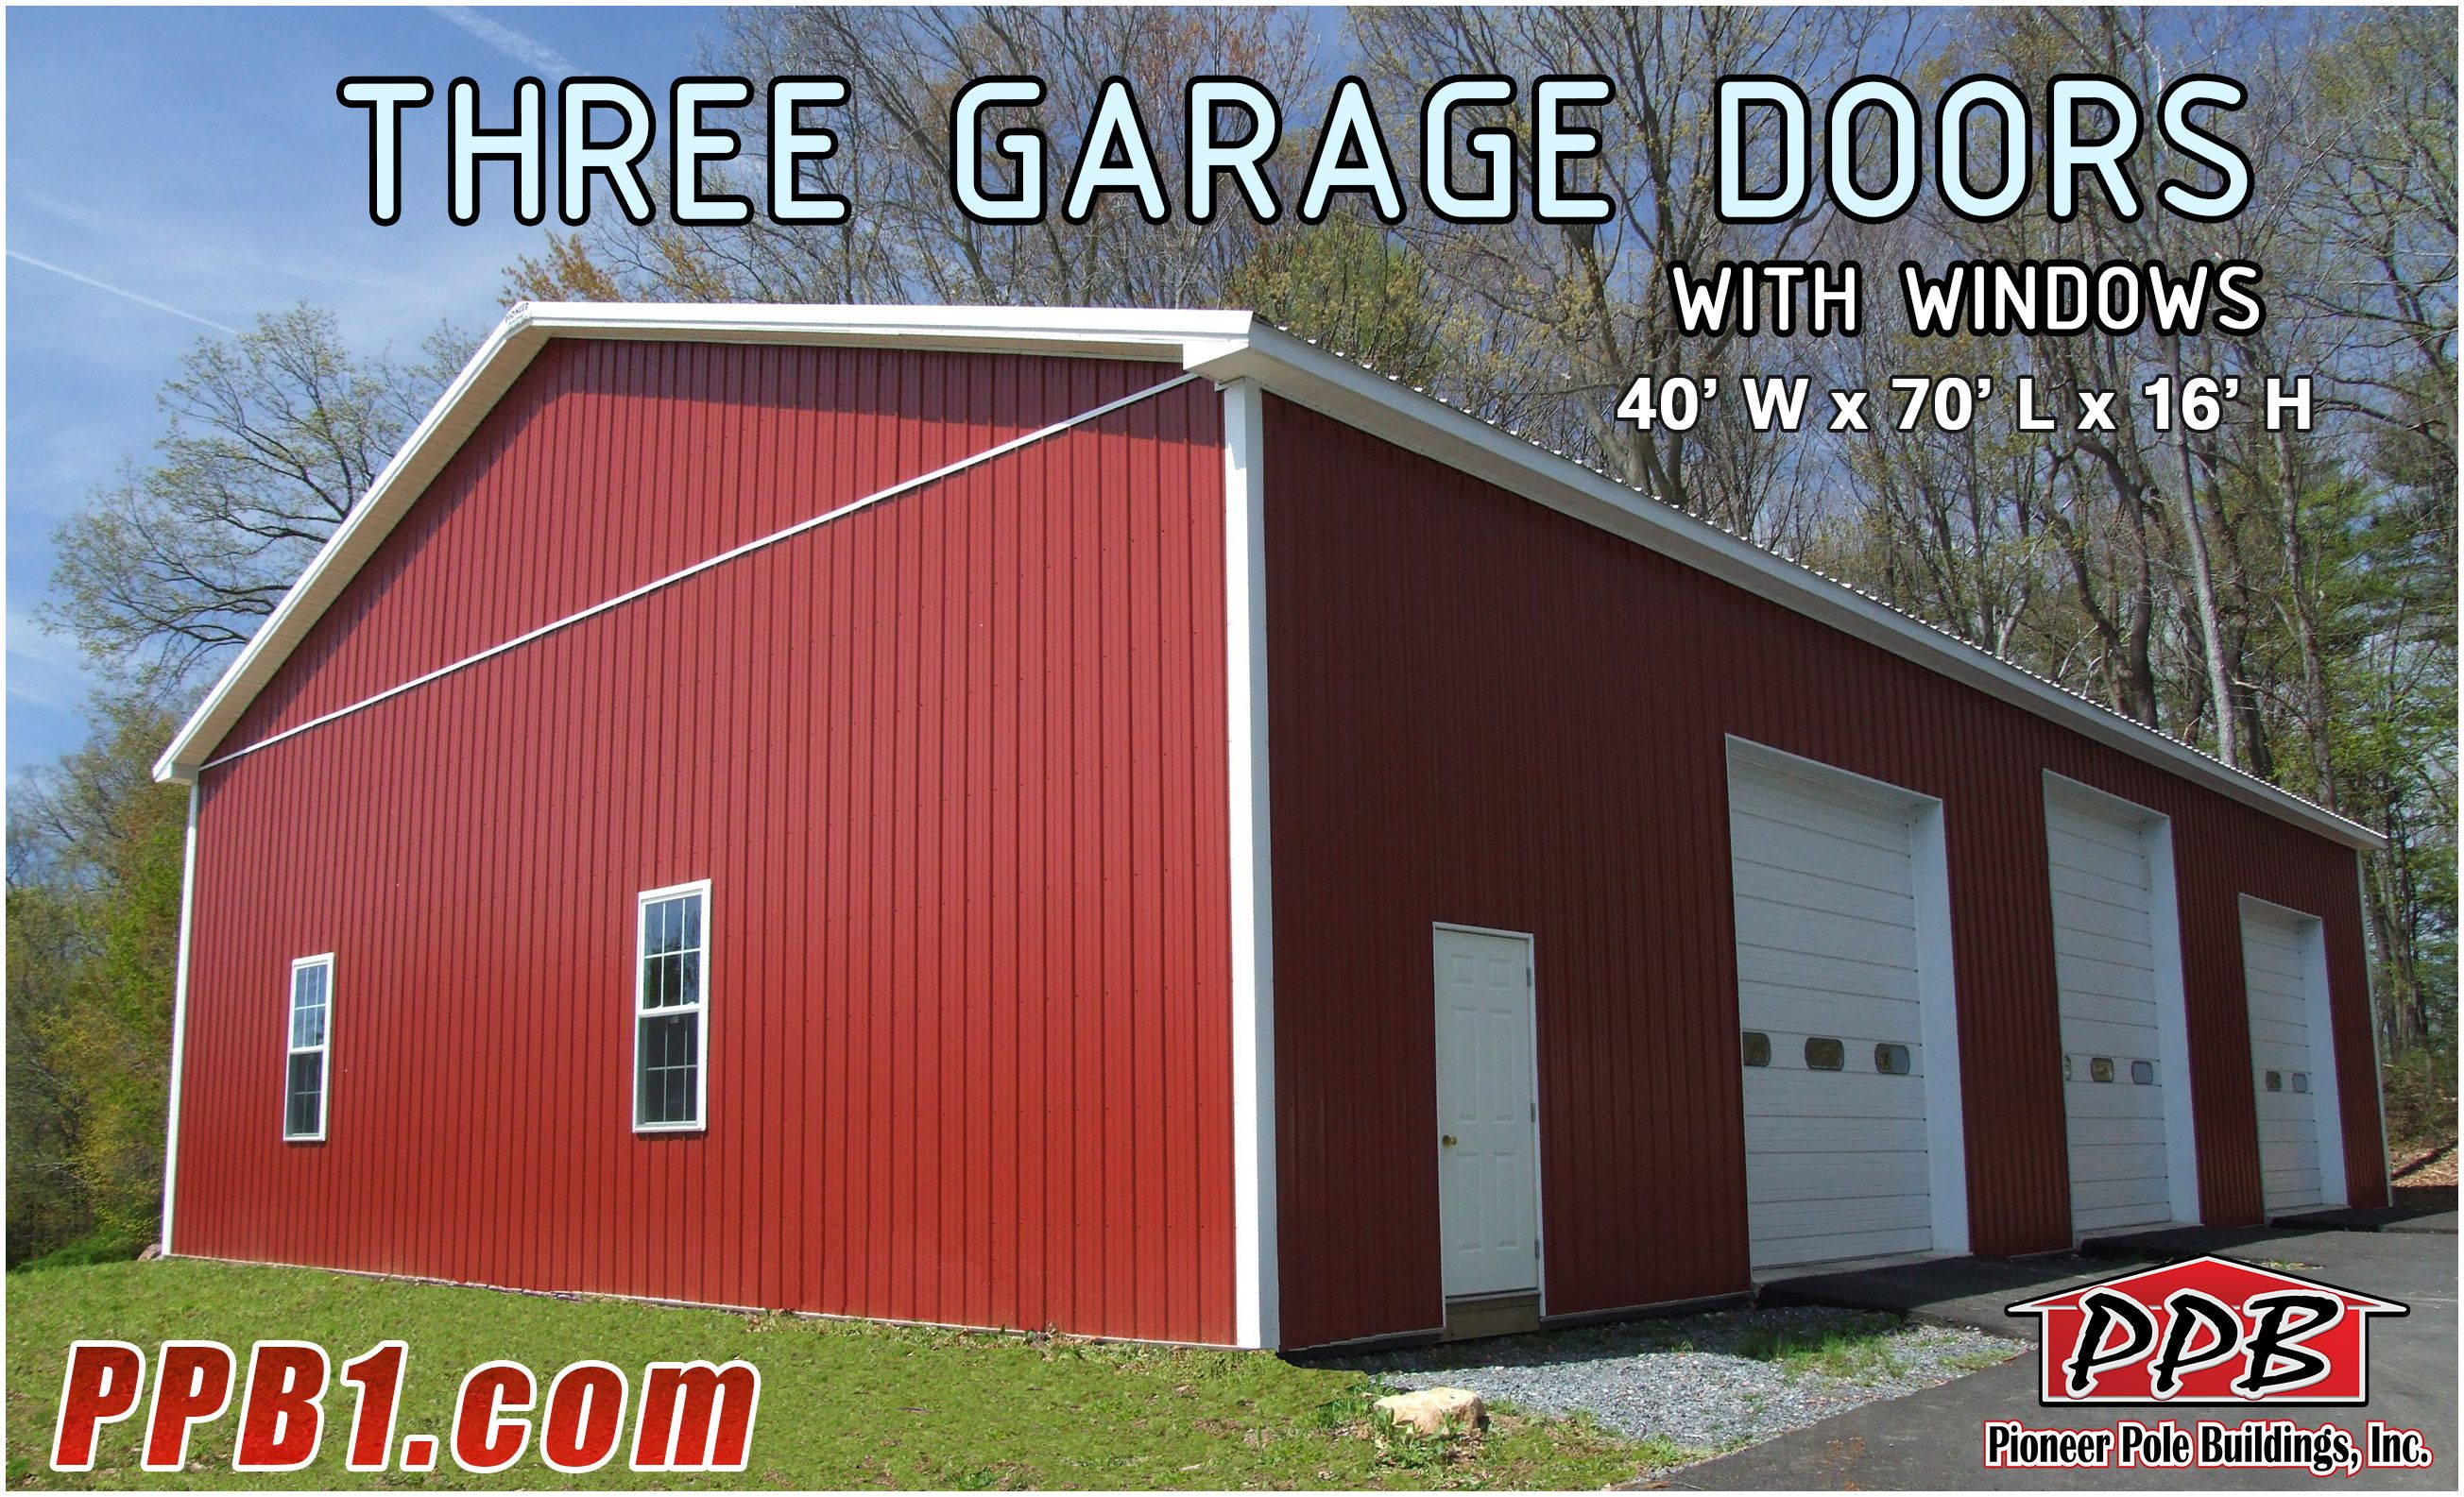 Pin By Pioneer Pole Buildings Inc On Dream Garages Pole Buildings Garage Design Garage Door Windows